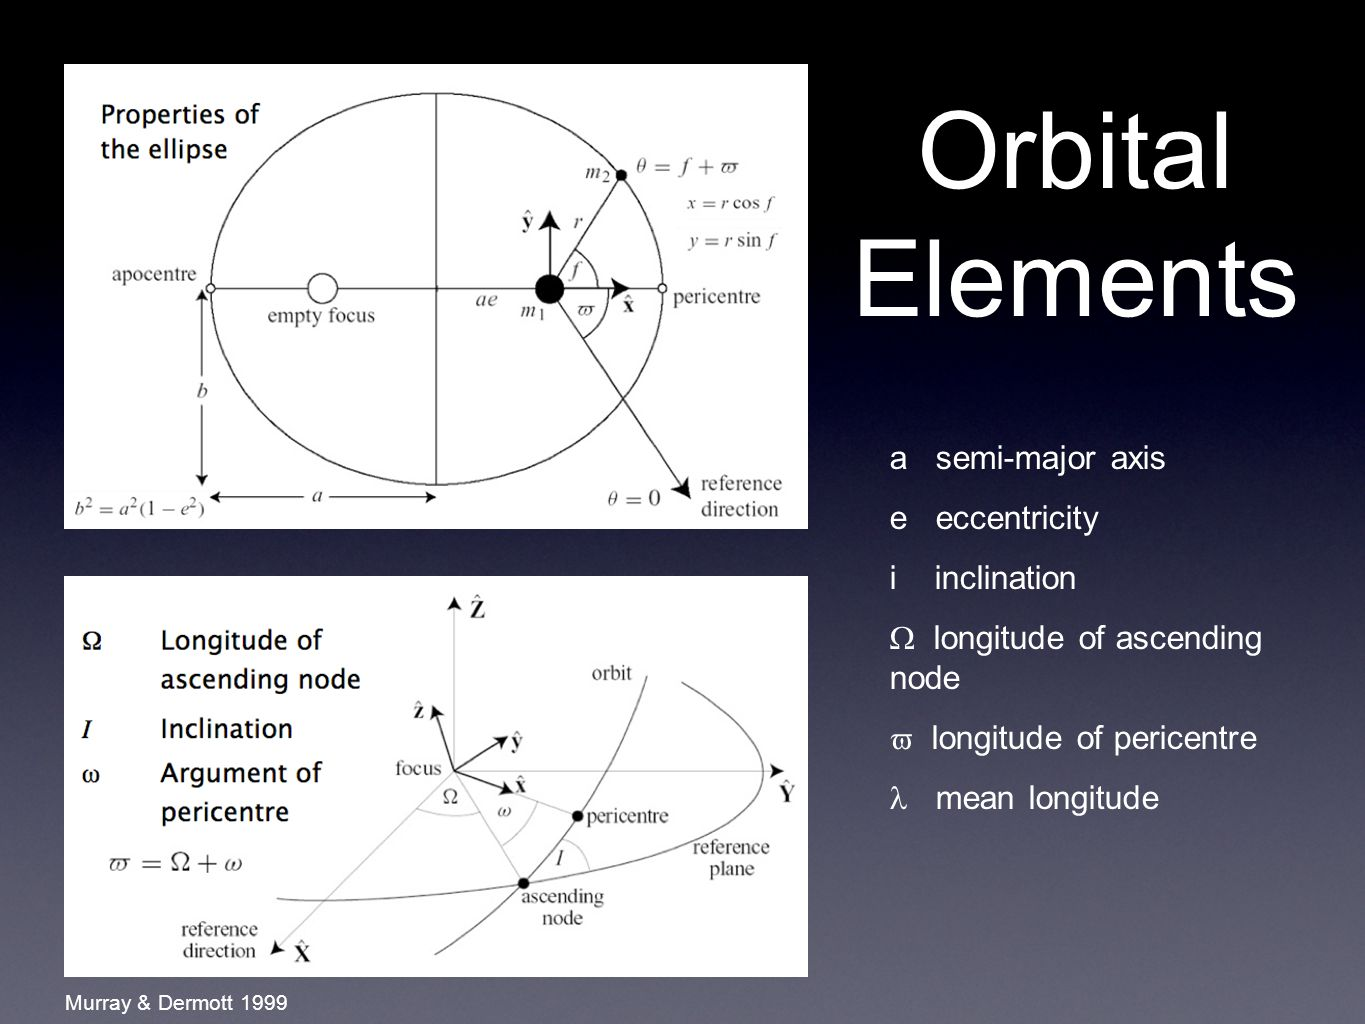 Orbital Elements a semi-major axis e eccentricity i inclination  longitude of ascending node  longitude of pericentre mean longitude Murray & Dermott 1999